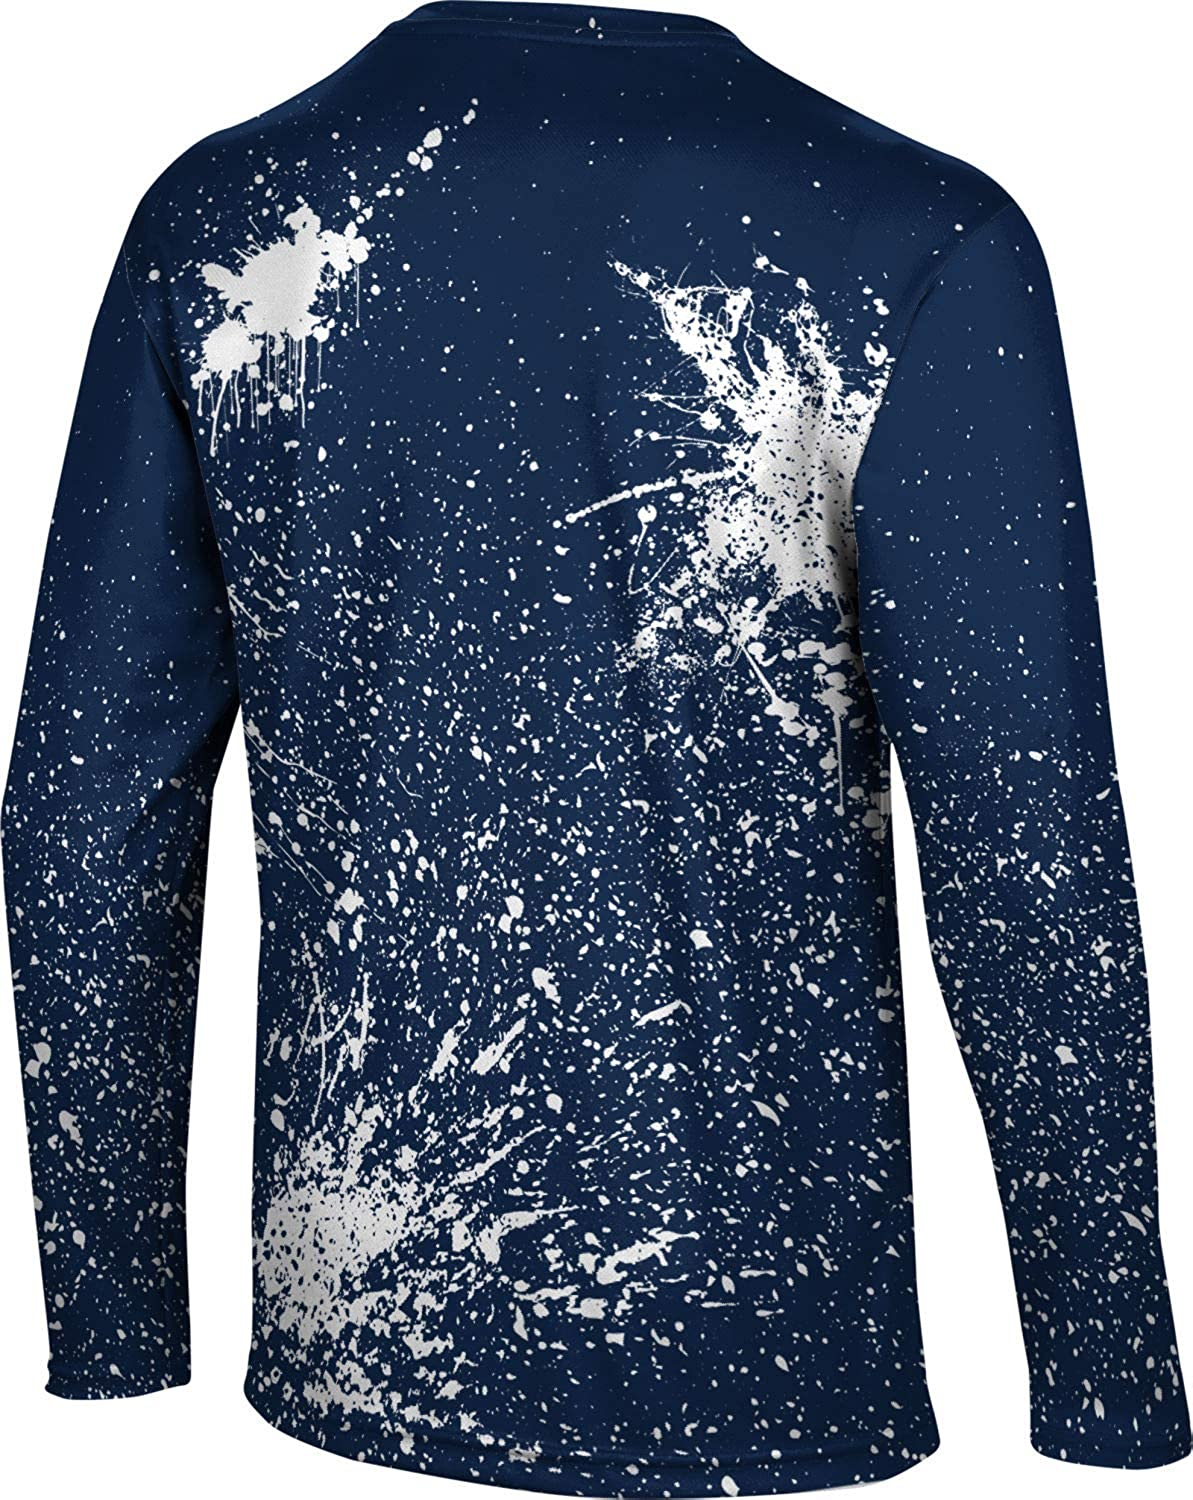 San Diego Mens Long Sleeve Tee Splatter ProSphere University of California